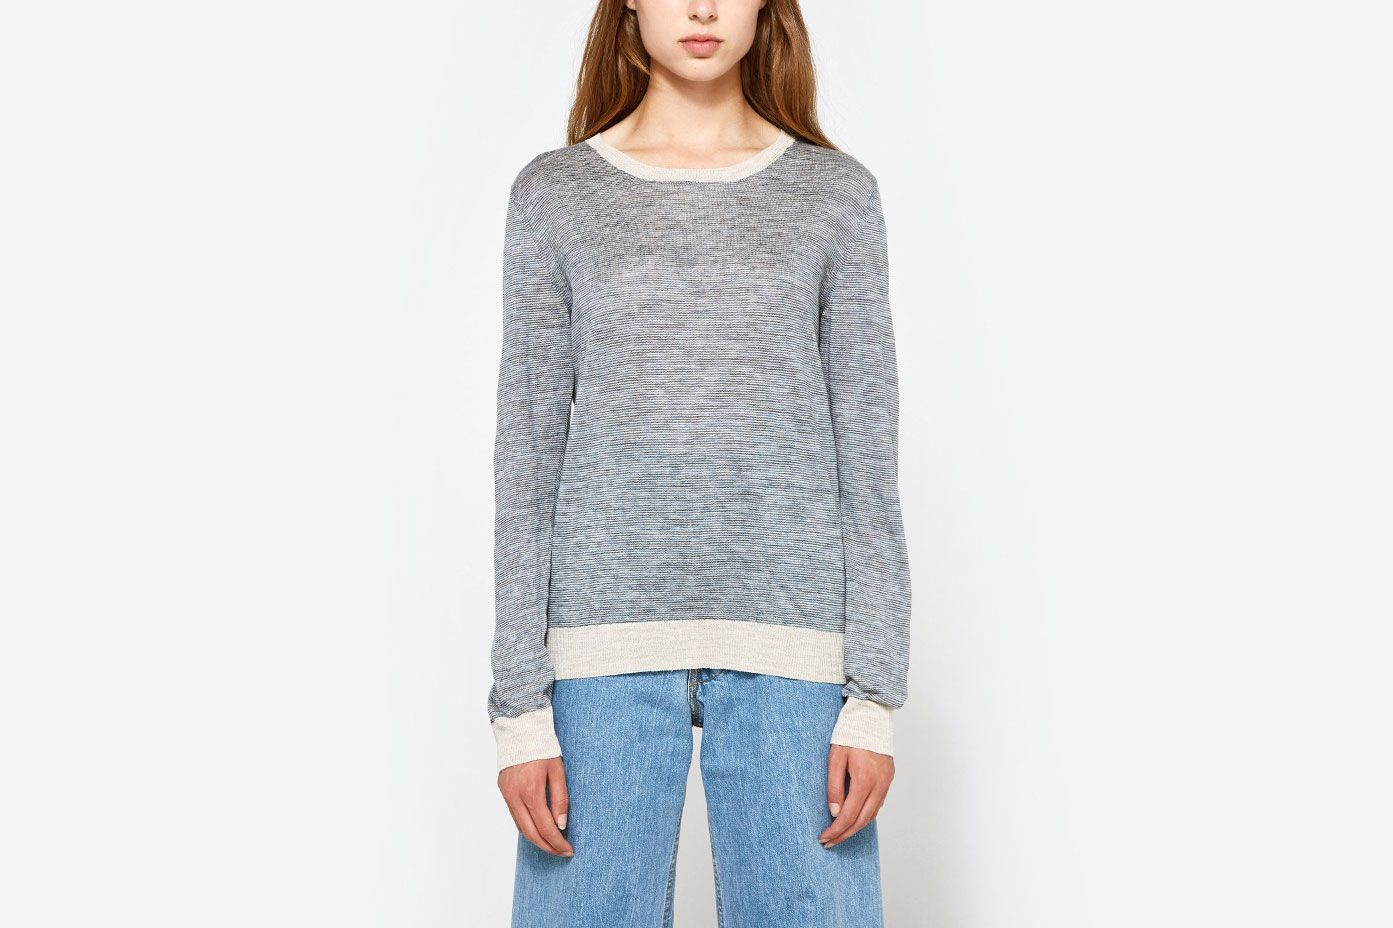 A.P.C. Westward Sweater